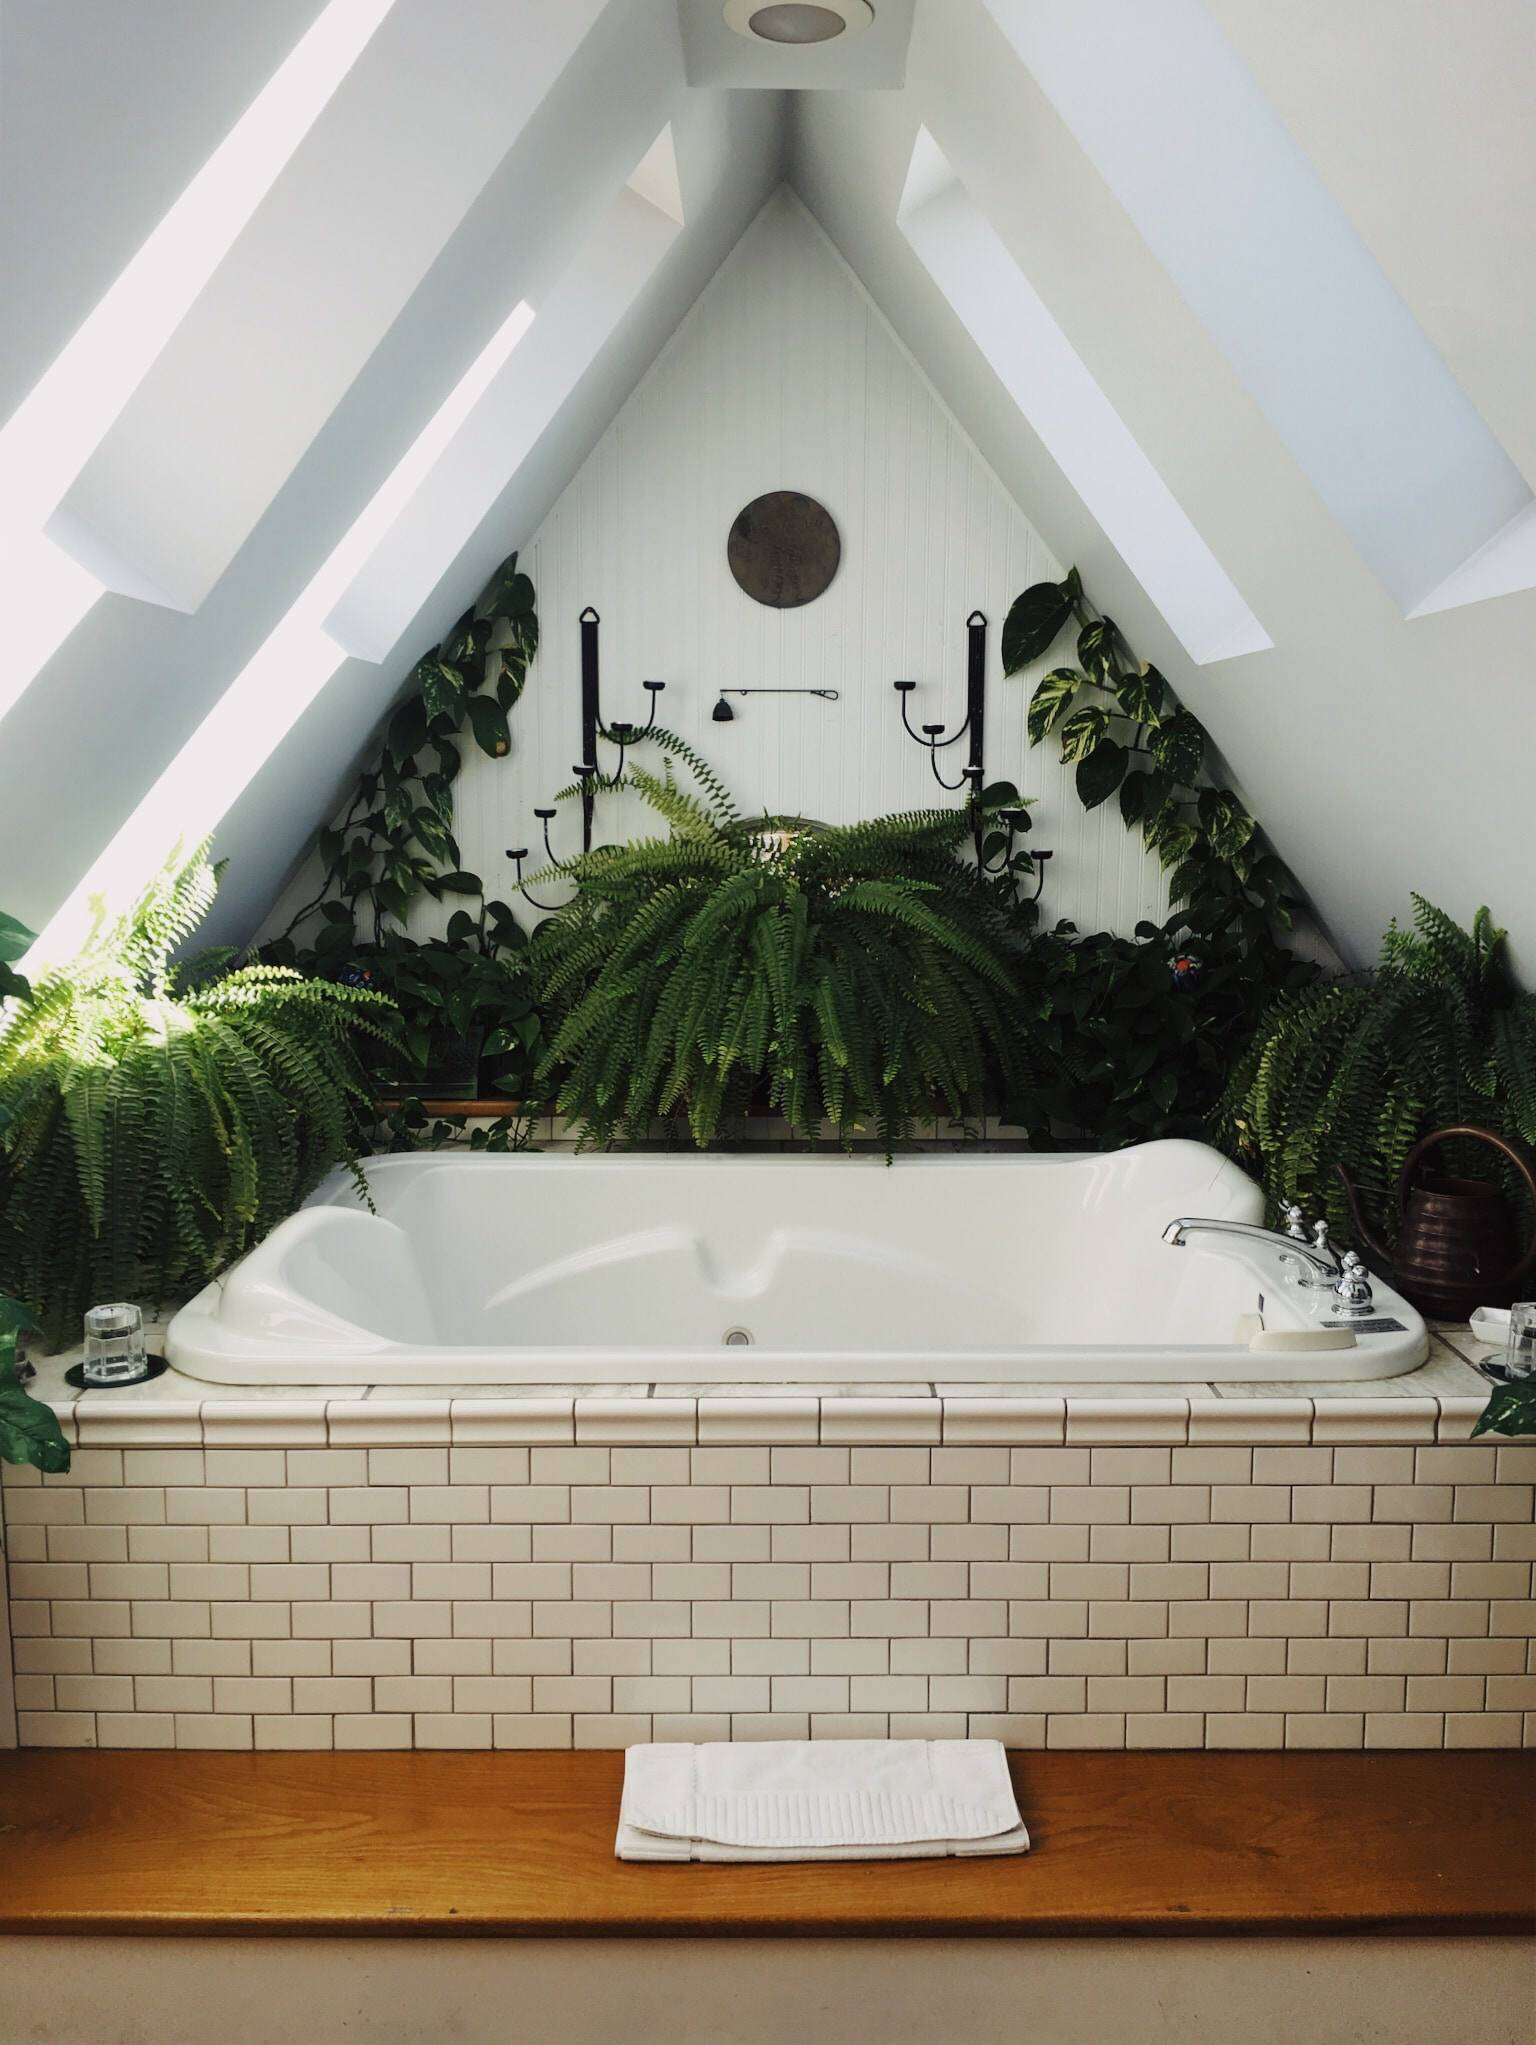 Incredible stunning bathroom from lisa moyneur